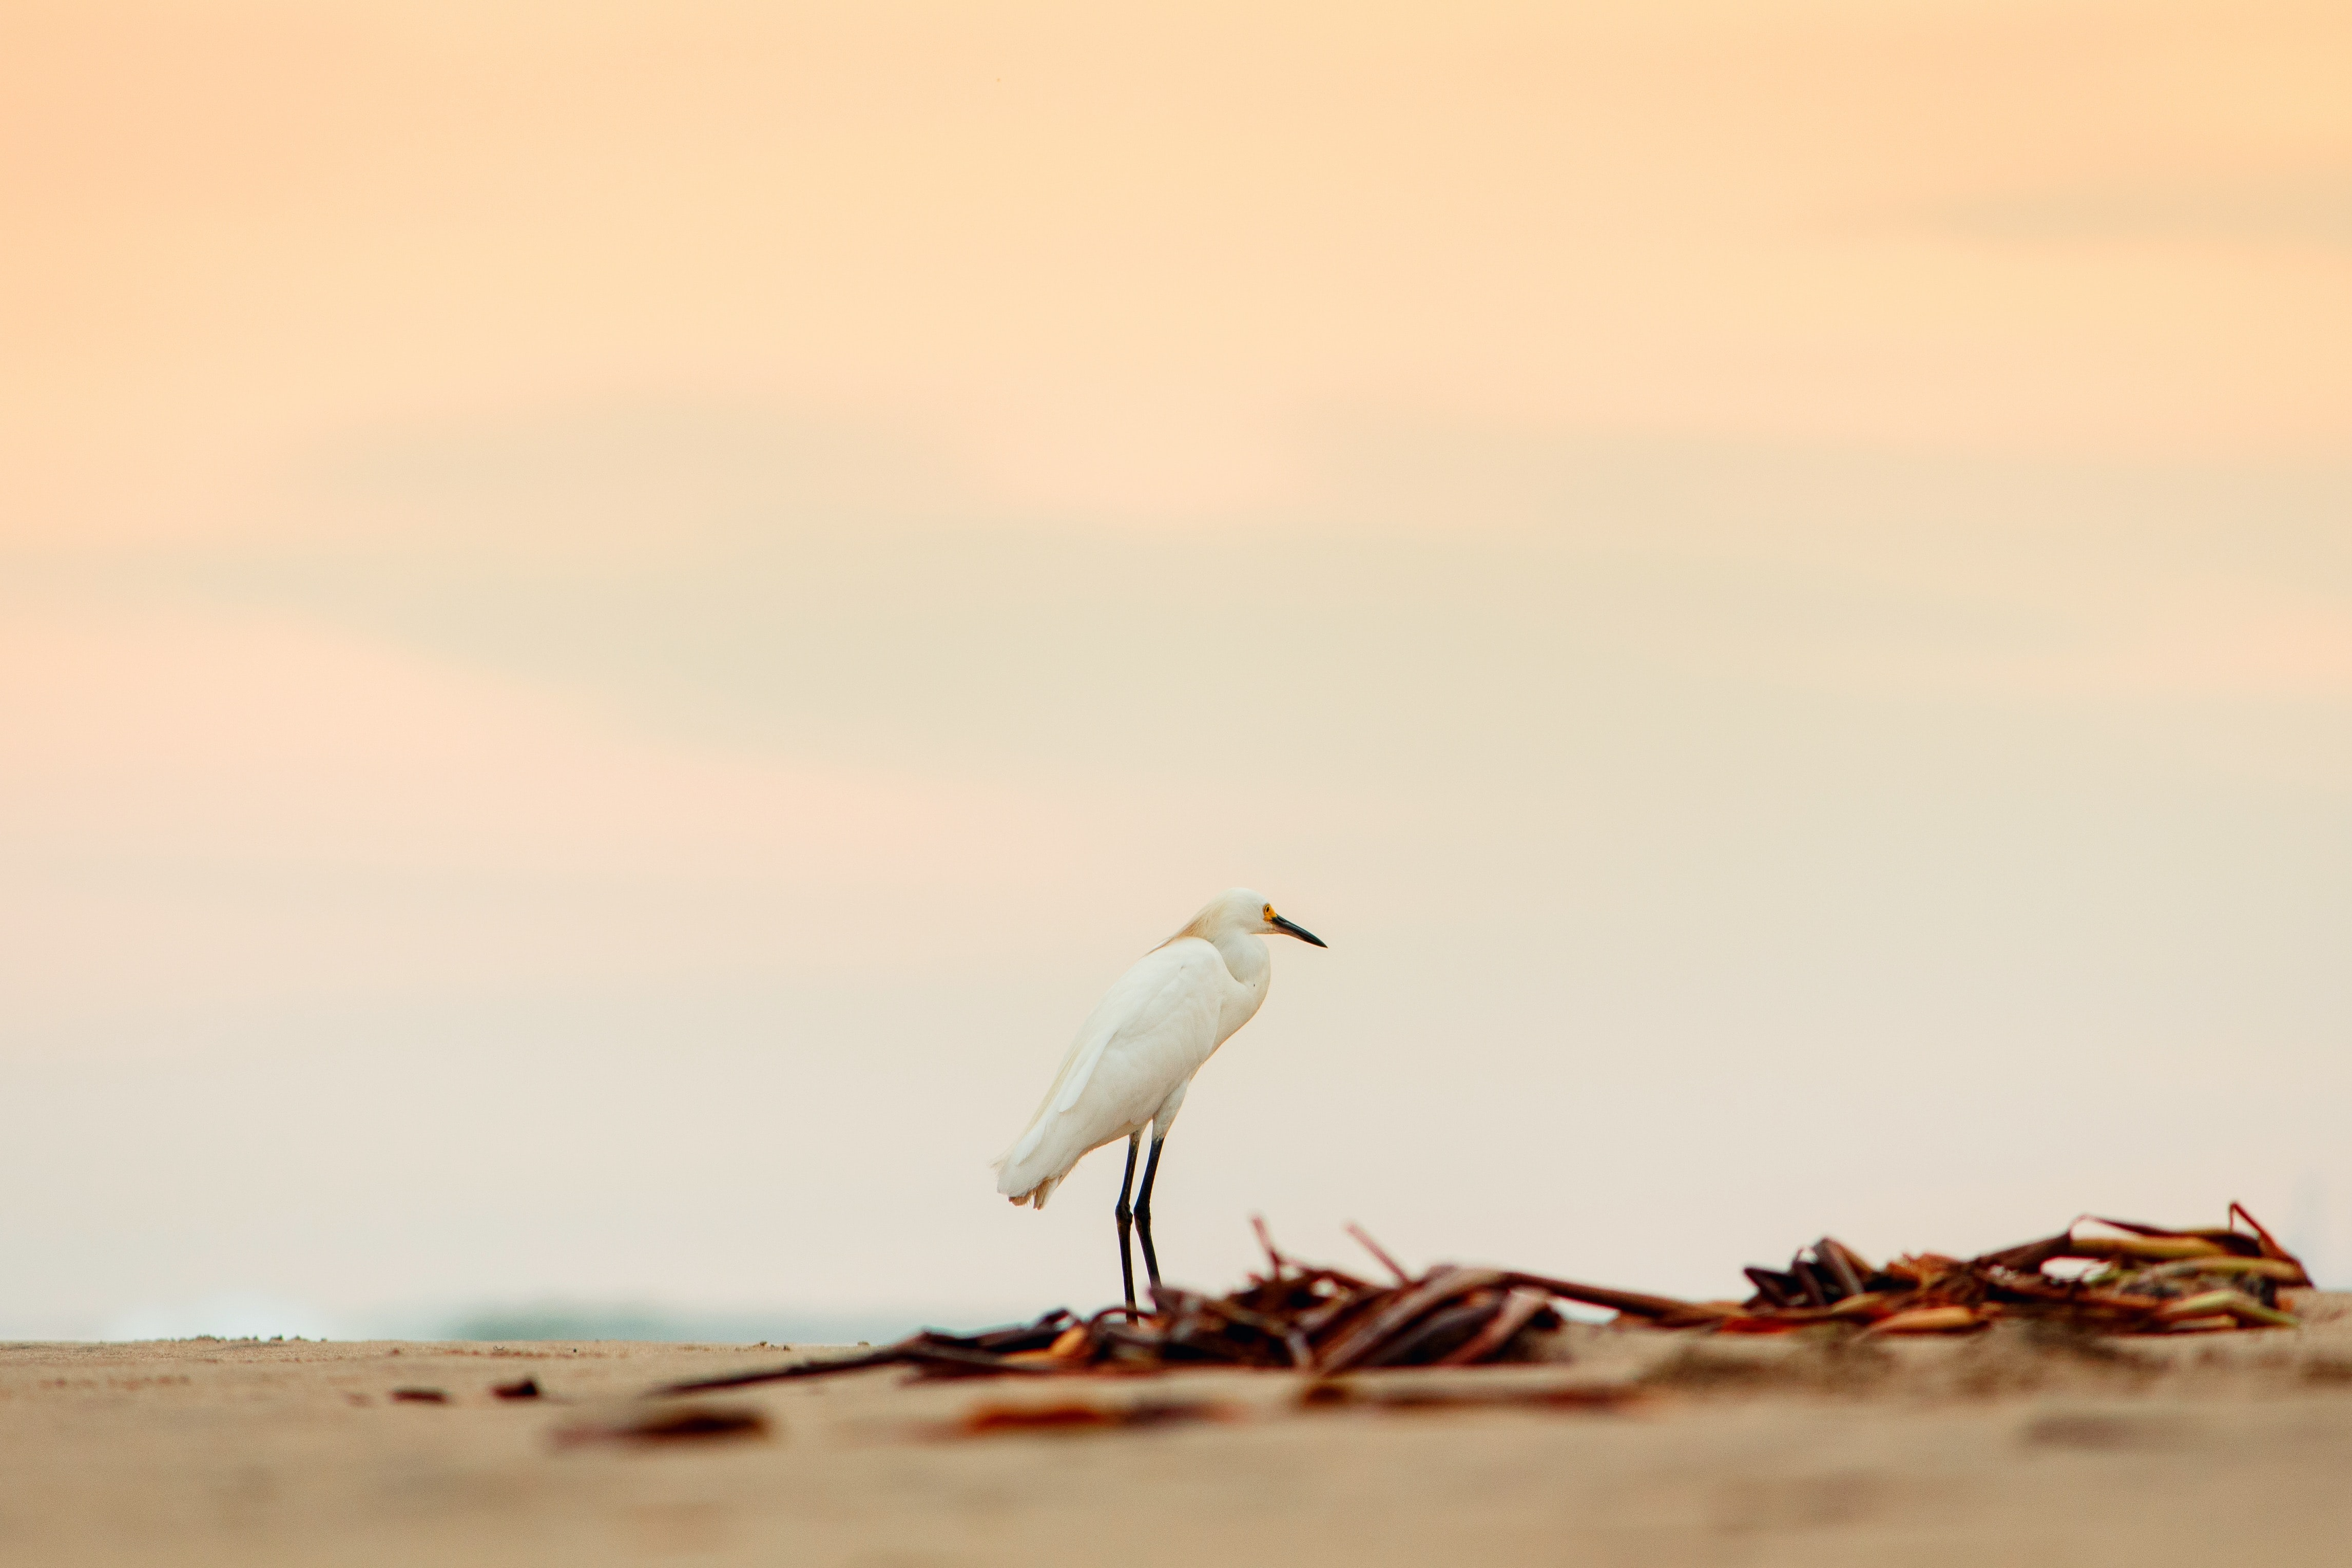 tilt shift lens photography of white bird